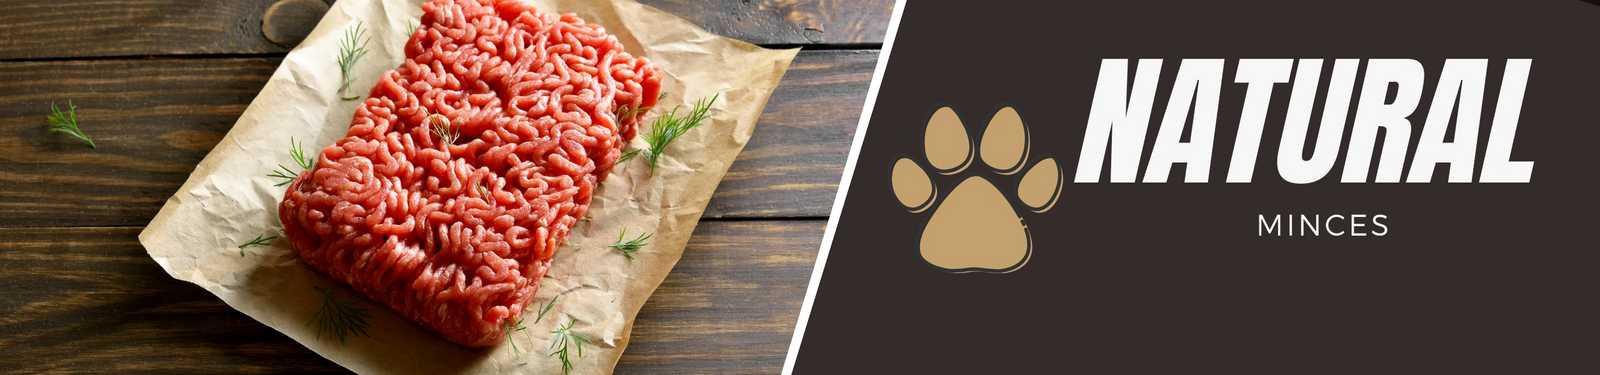 Raw natural dog food mince